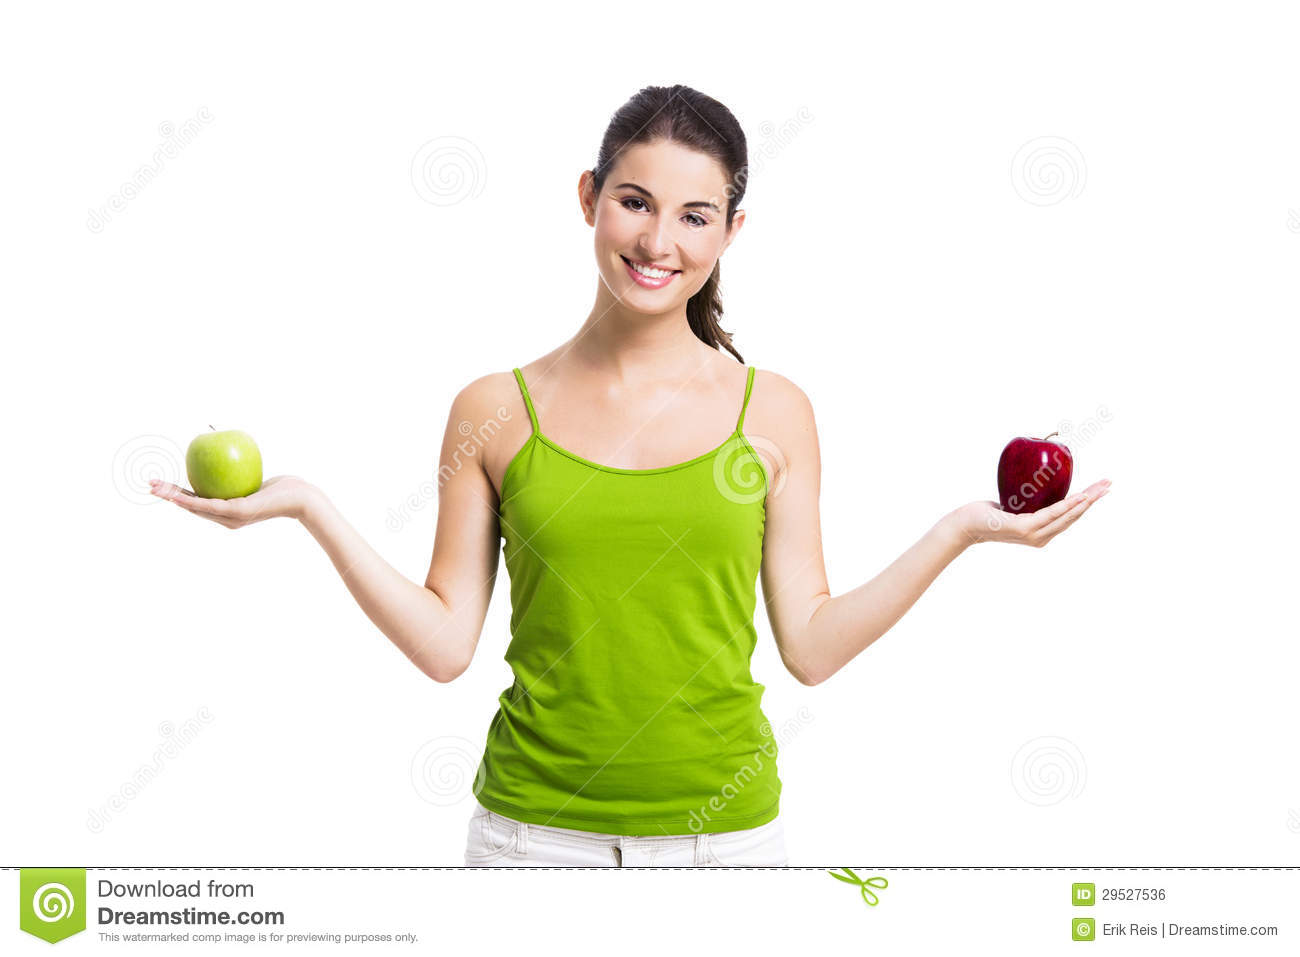 healthy-woman-apples-29527536.jpg